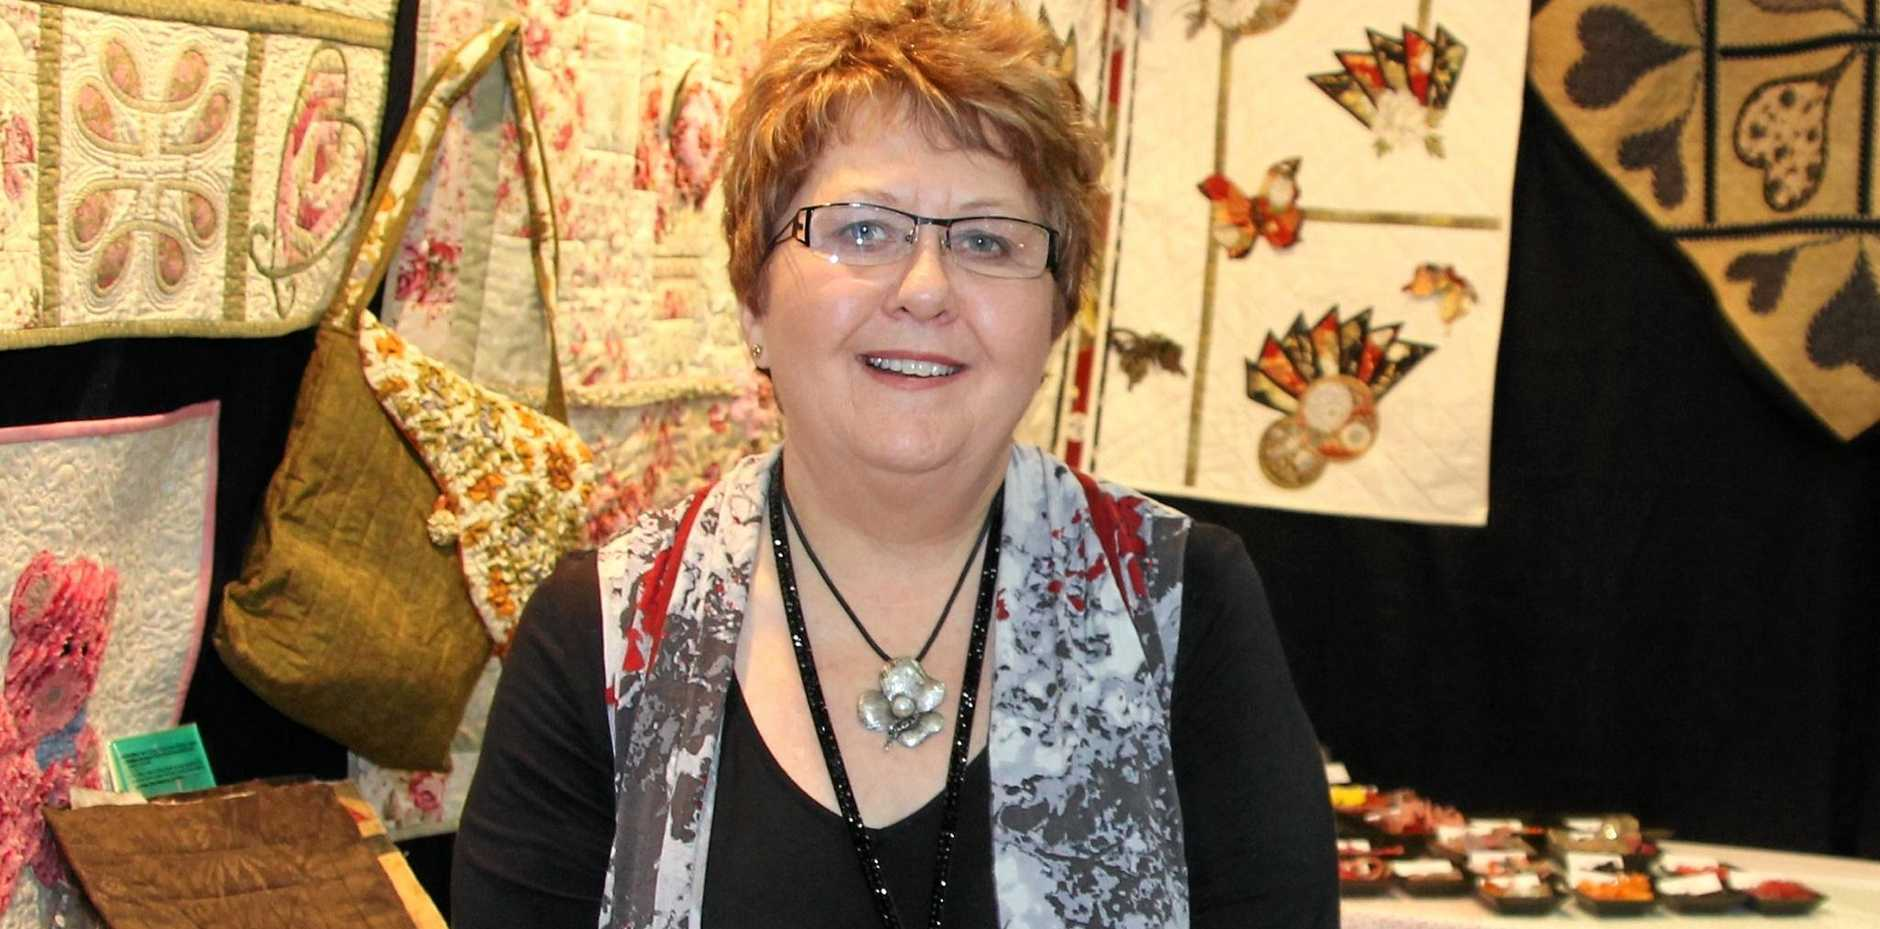 QUILTING JOURNEY: Pauline Rogers has taken her unique quilting methods, her new book and self-designed tools to the world.